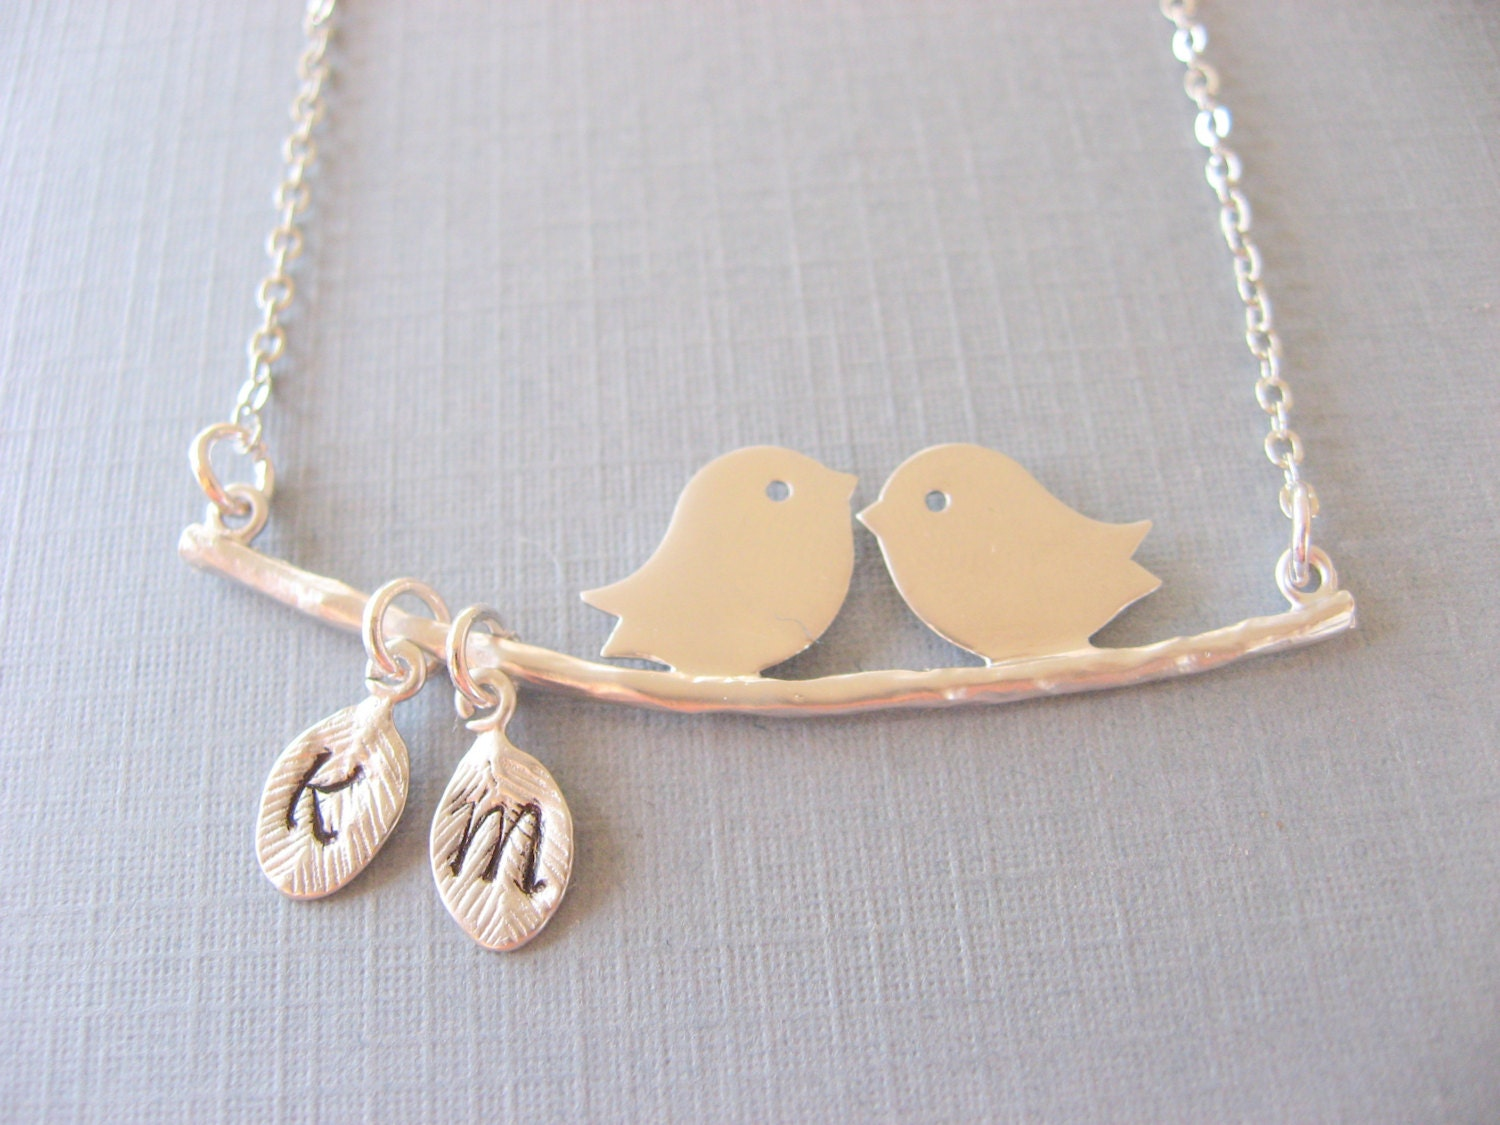 chain on jewelry cute creative birds in accessories six pendant best branch animal love women thin long from gifts necklace item necklaces friend bird enamel